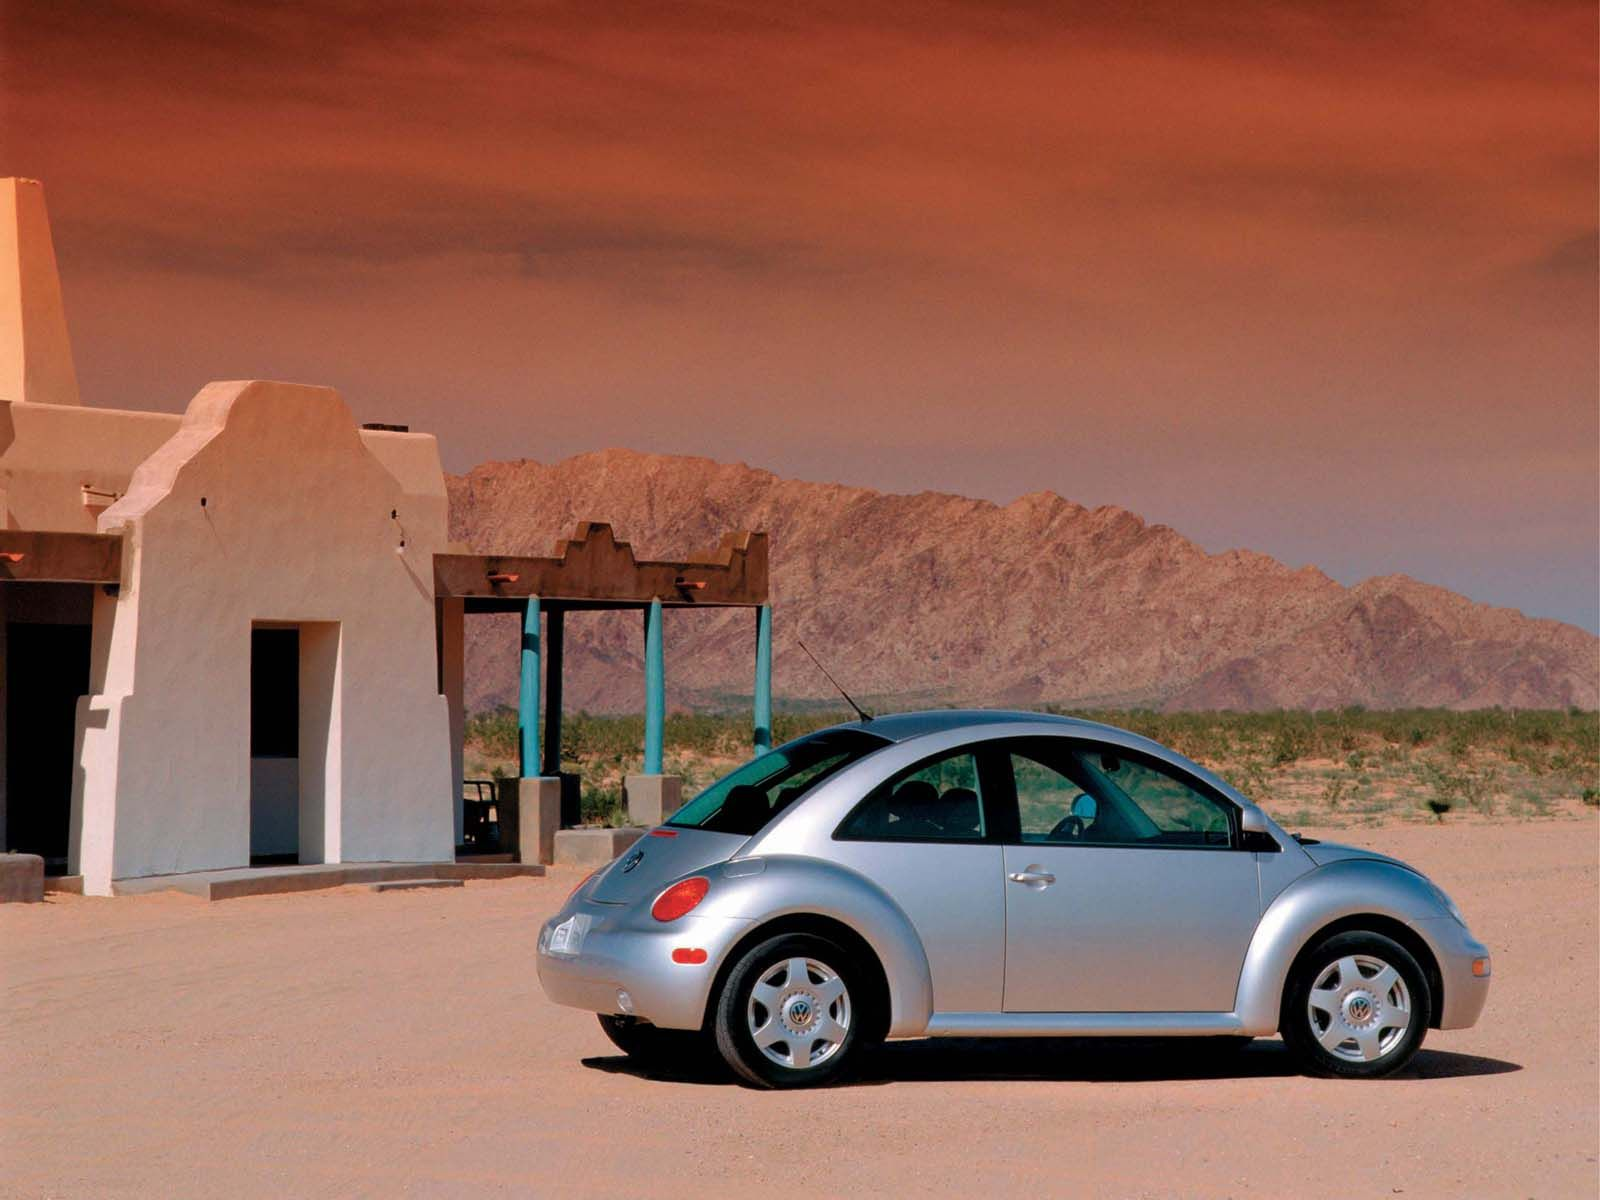 volkswagen beetle Wallpaper and Background Image | 1600x1200 | ID:464983 - Wallpaper Abyss